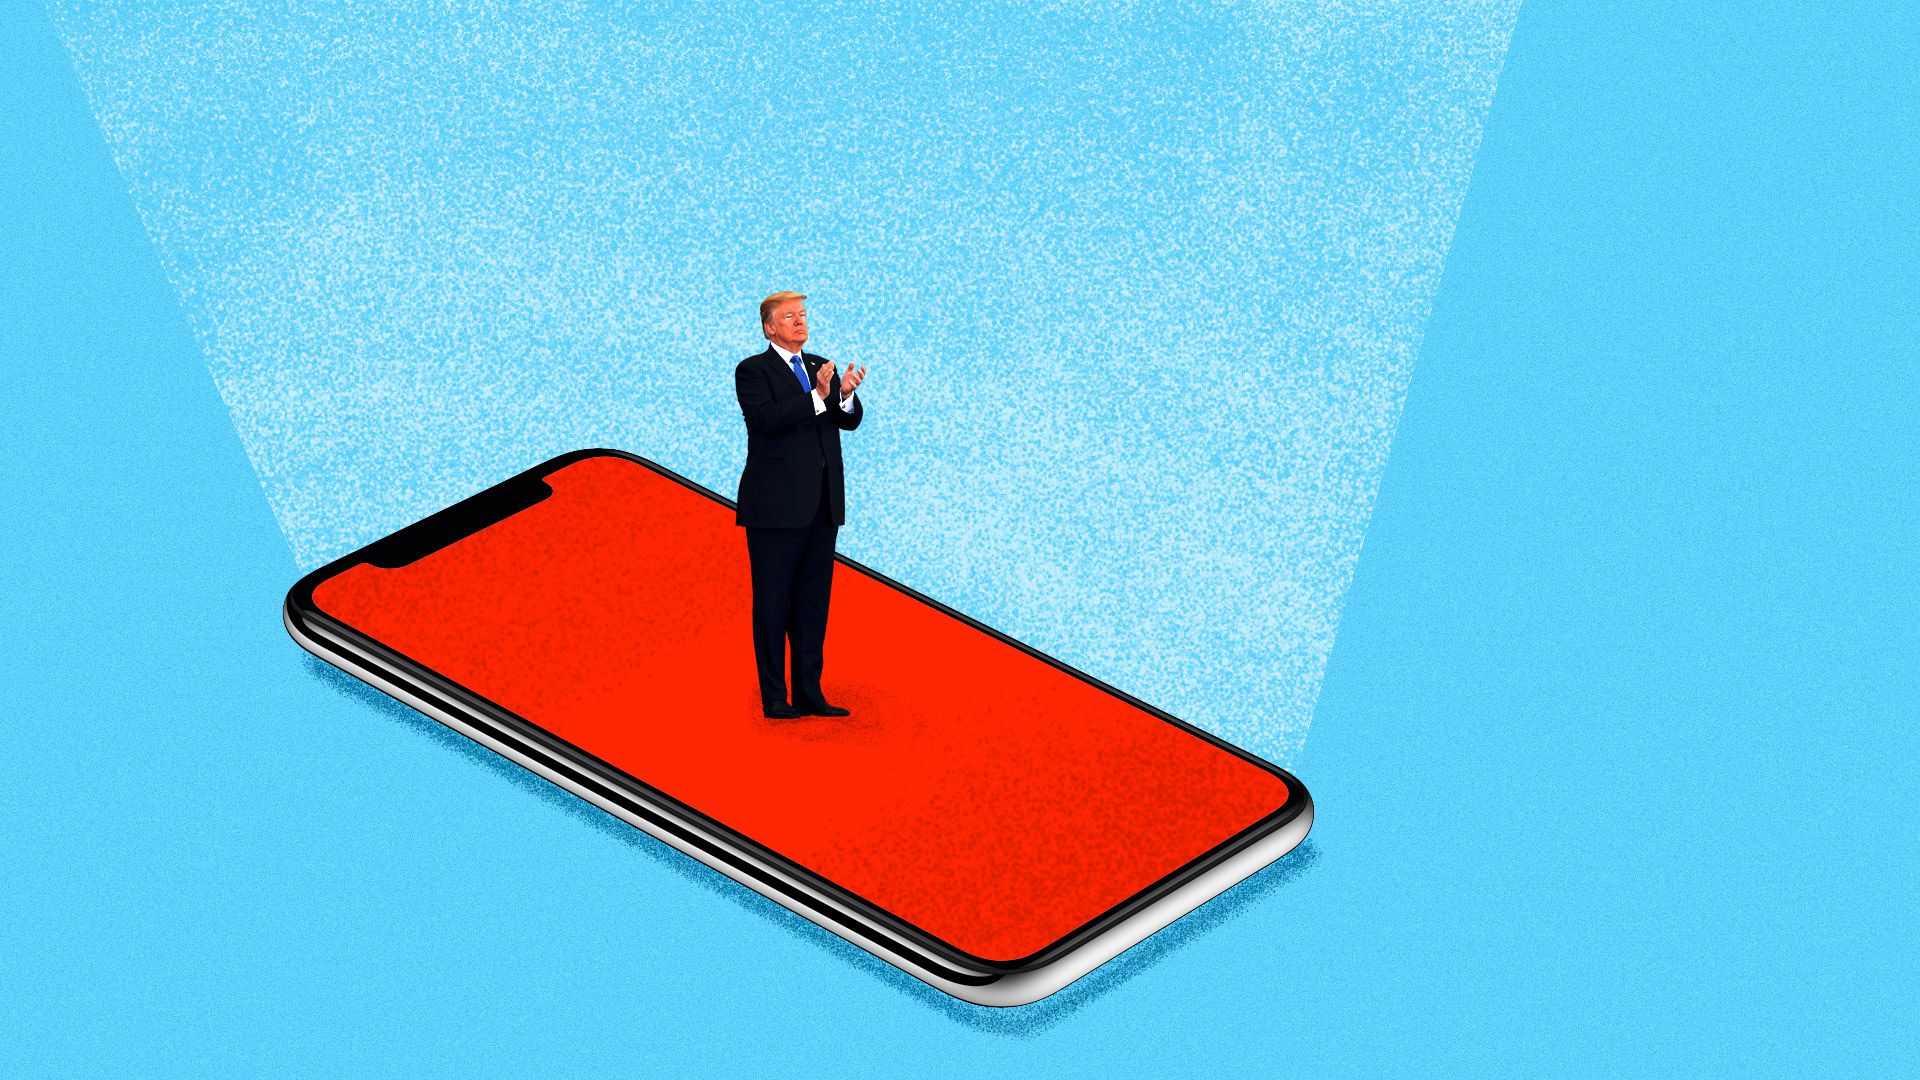 Illustration of Trump clapping on top of a cell phone